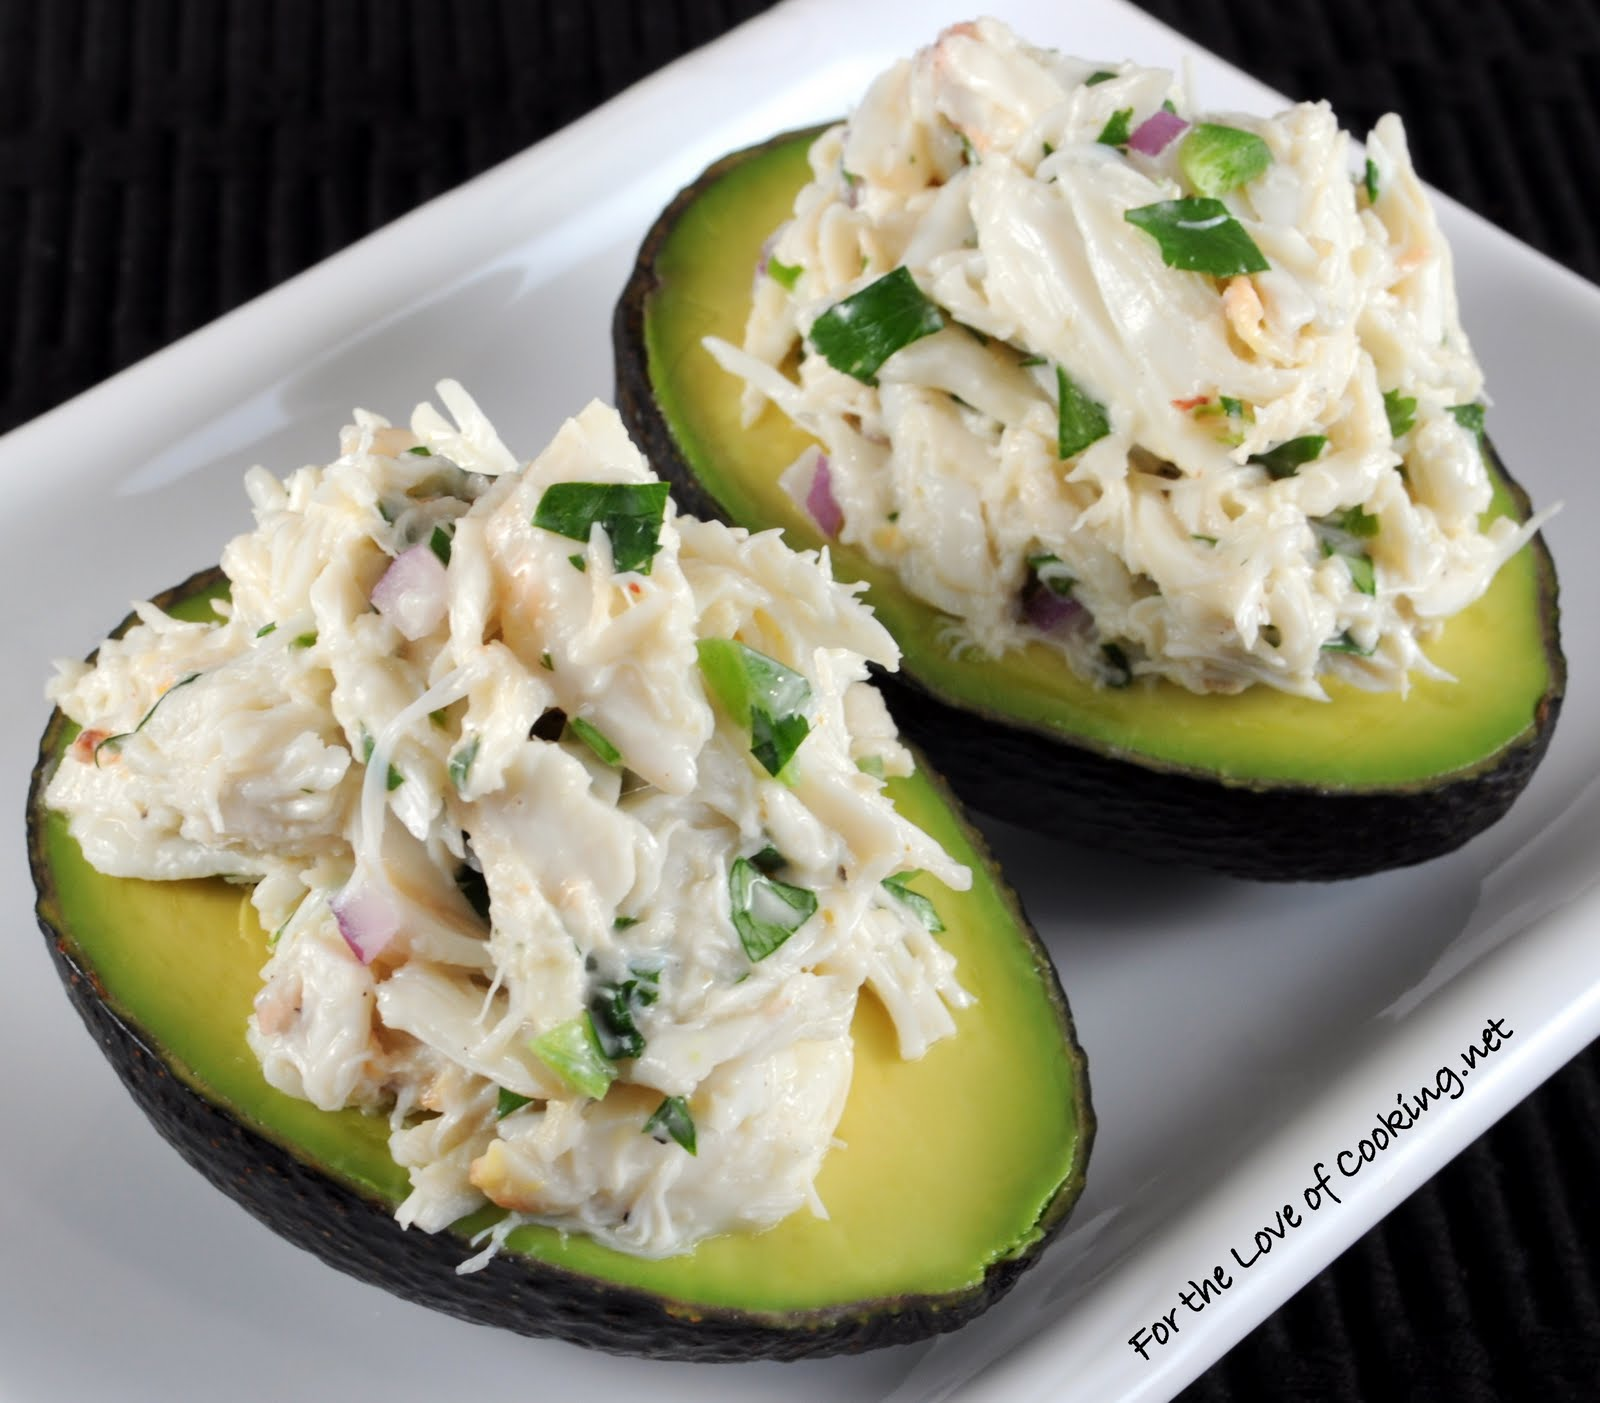 Cilantro and Lime Crab Salad in Avocado Halves | For the Love of ...